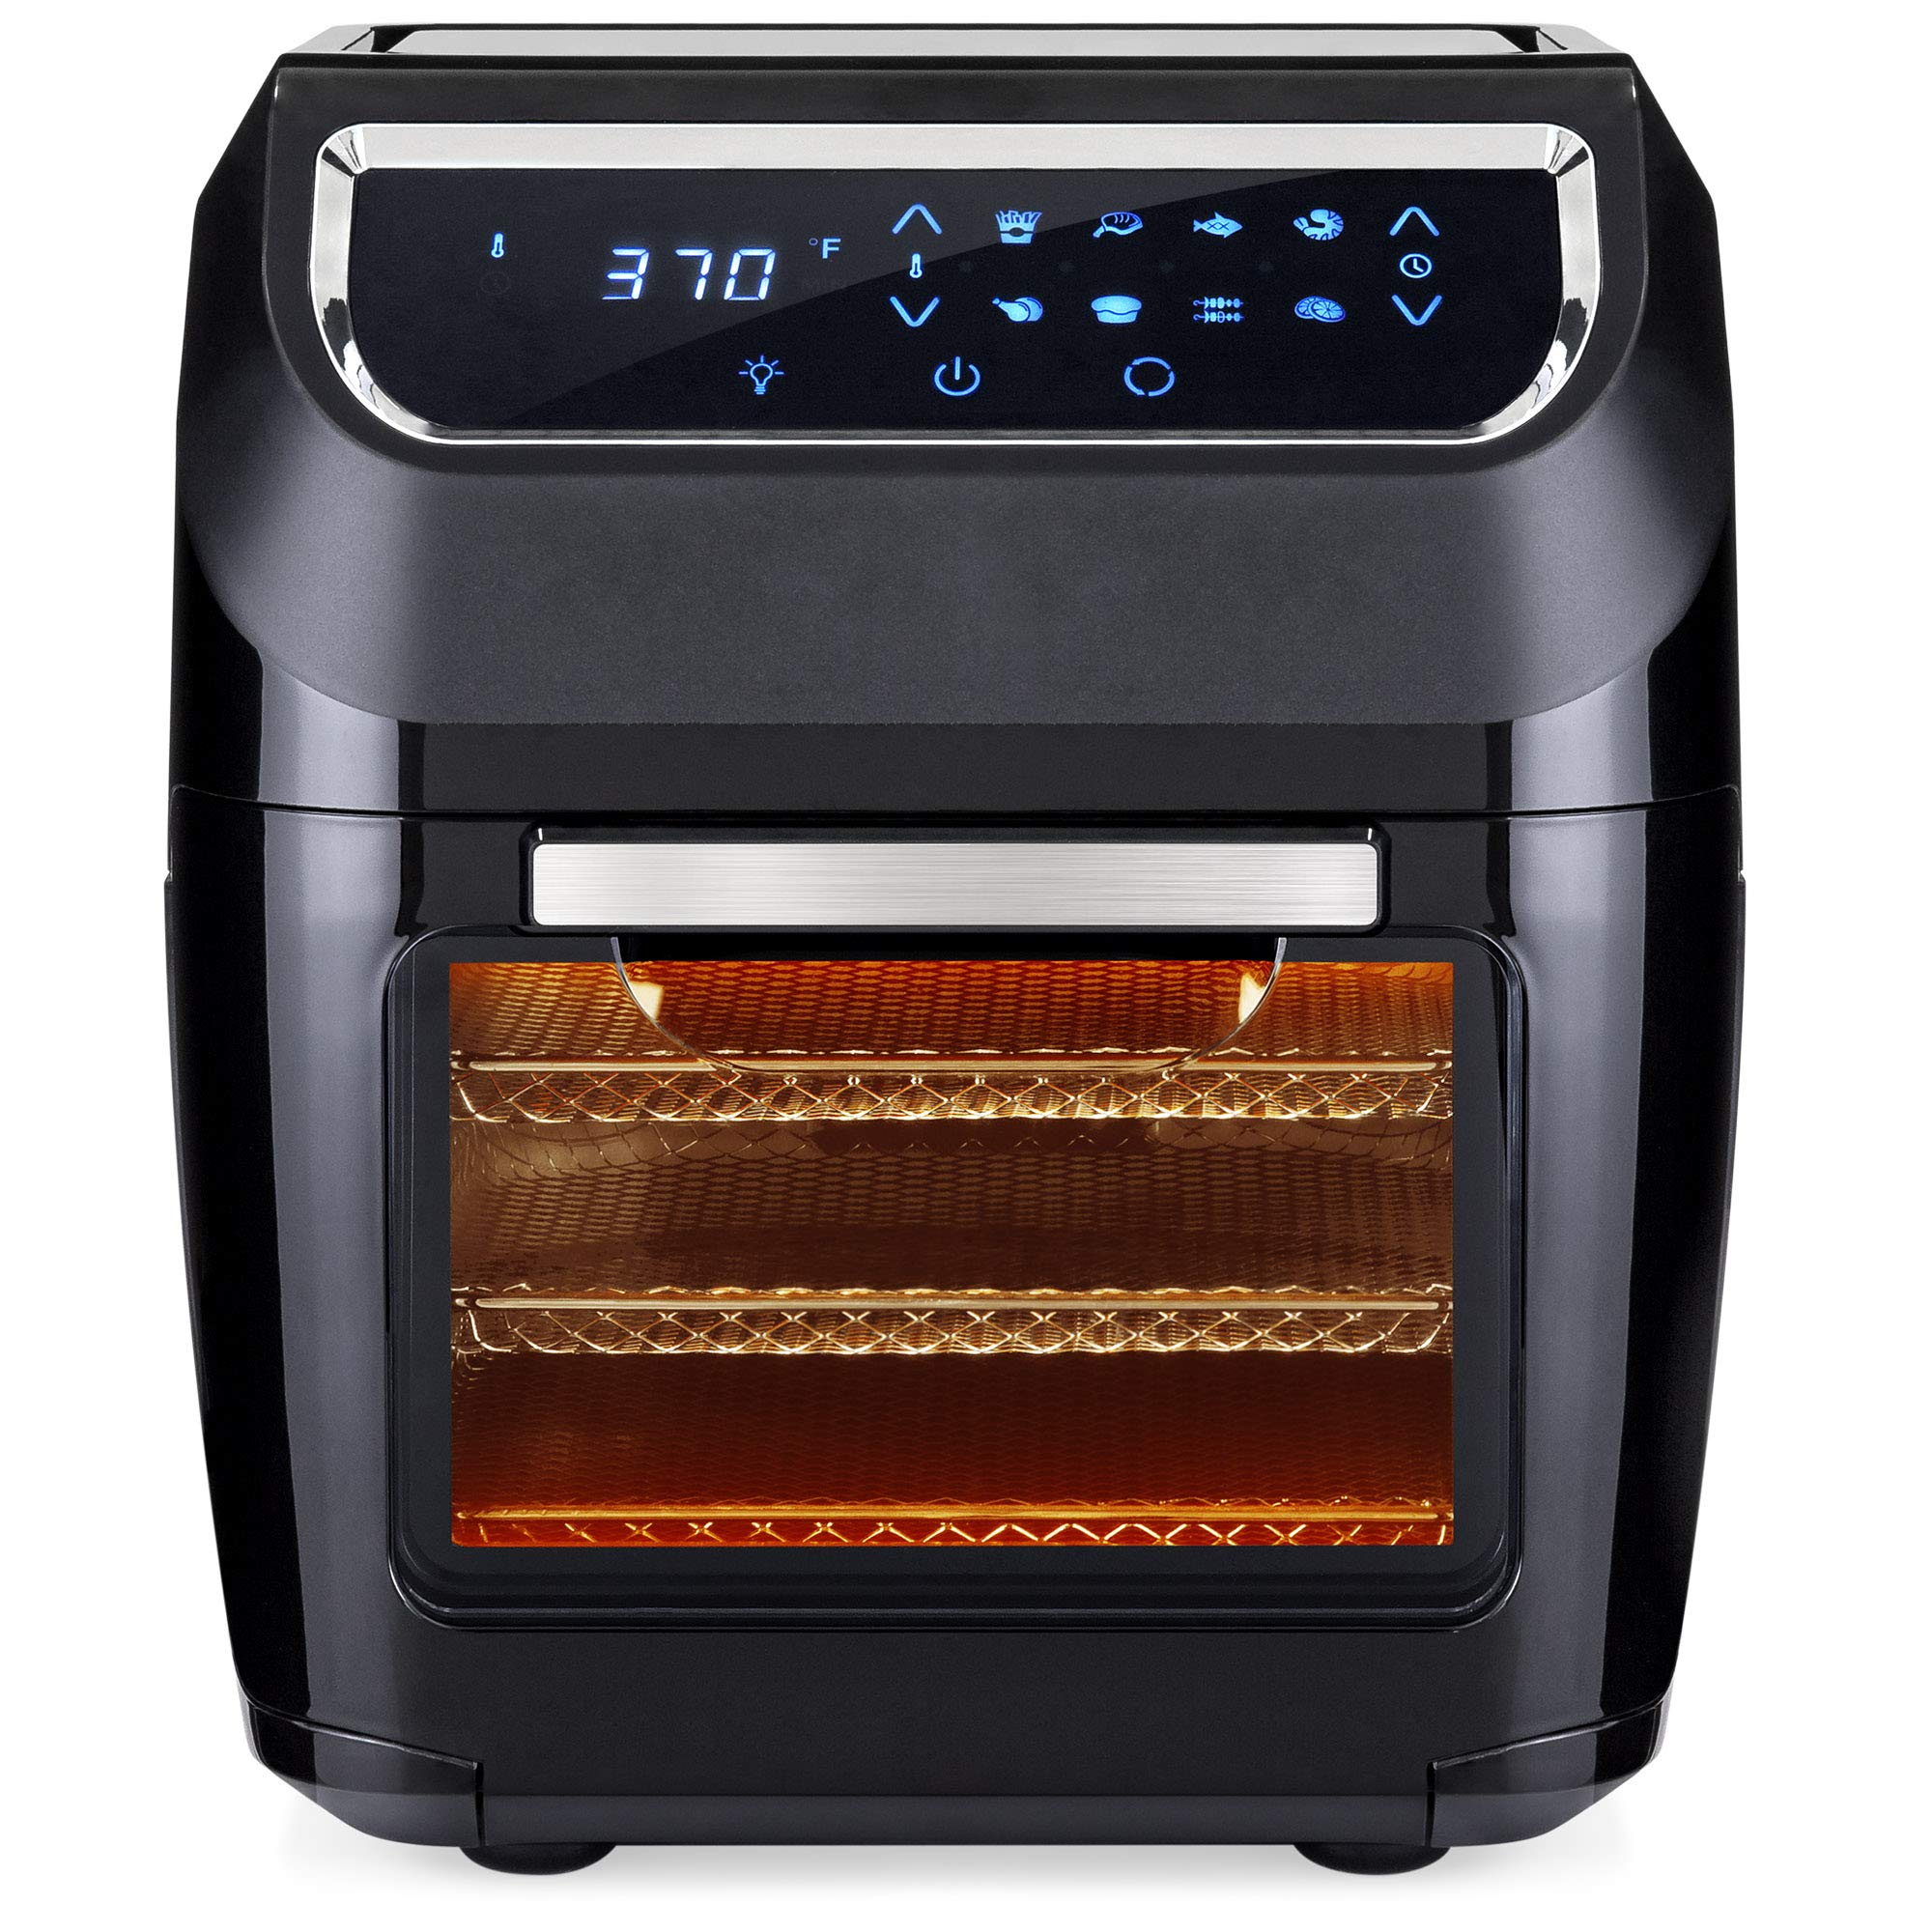 Best Choice Products 11.6qt 1700W 8-in-1 Electric XL Air Fryer Oven, Rotisserie, Dehydrator Kitchen Cooking Set w/ 8 Accessories, LED Touchscreen, Removable Door, Viewing Window, Overheat Protection by Best Choice Products